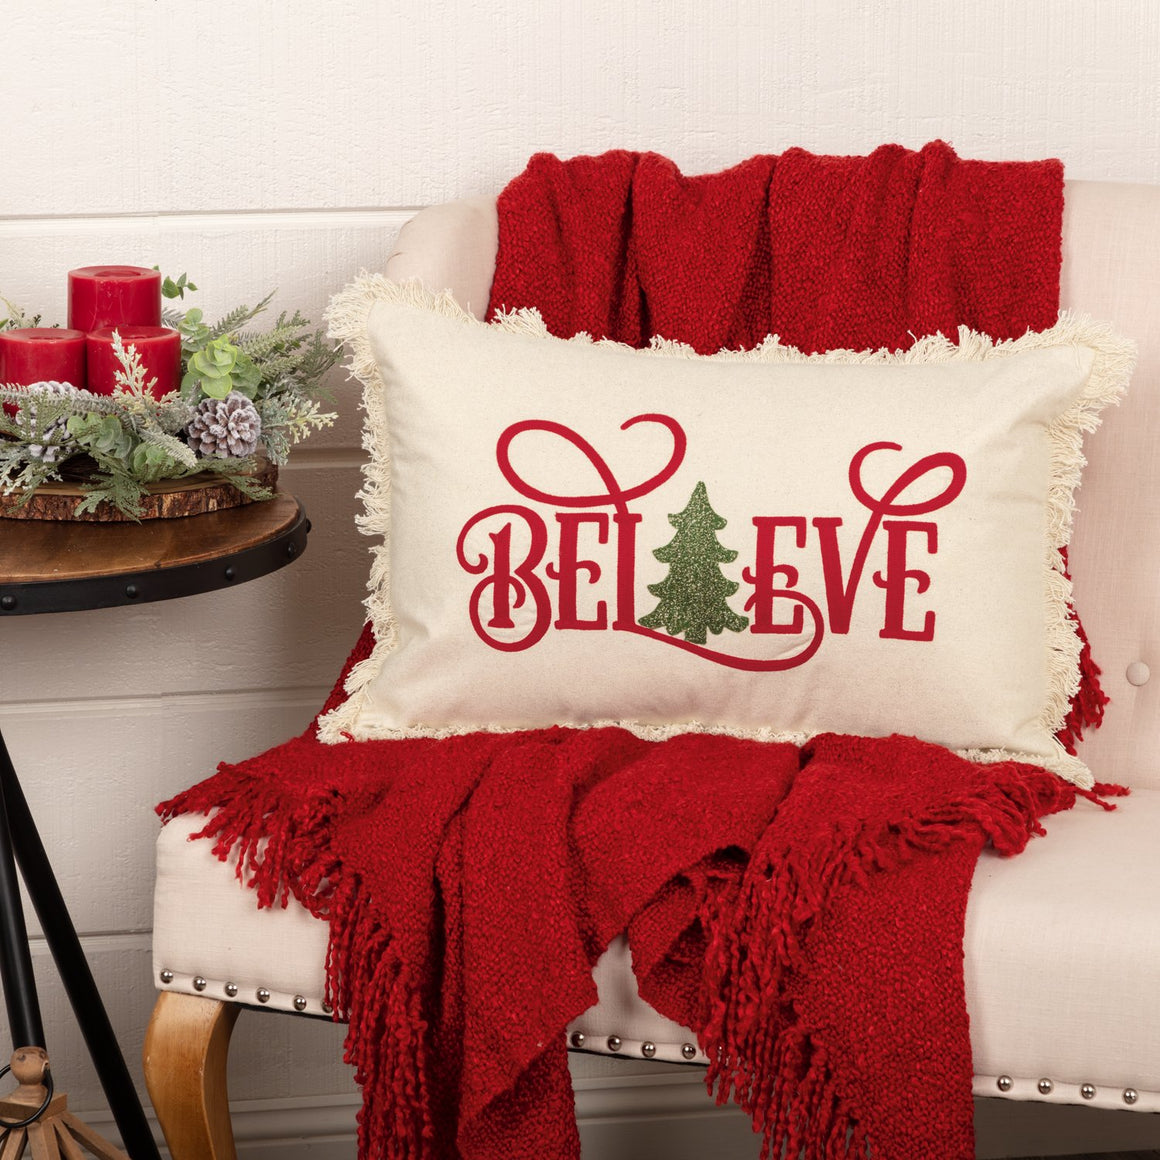 Believe Pillow 14x22